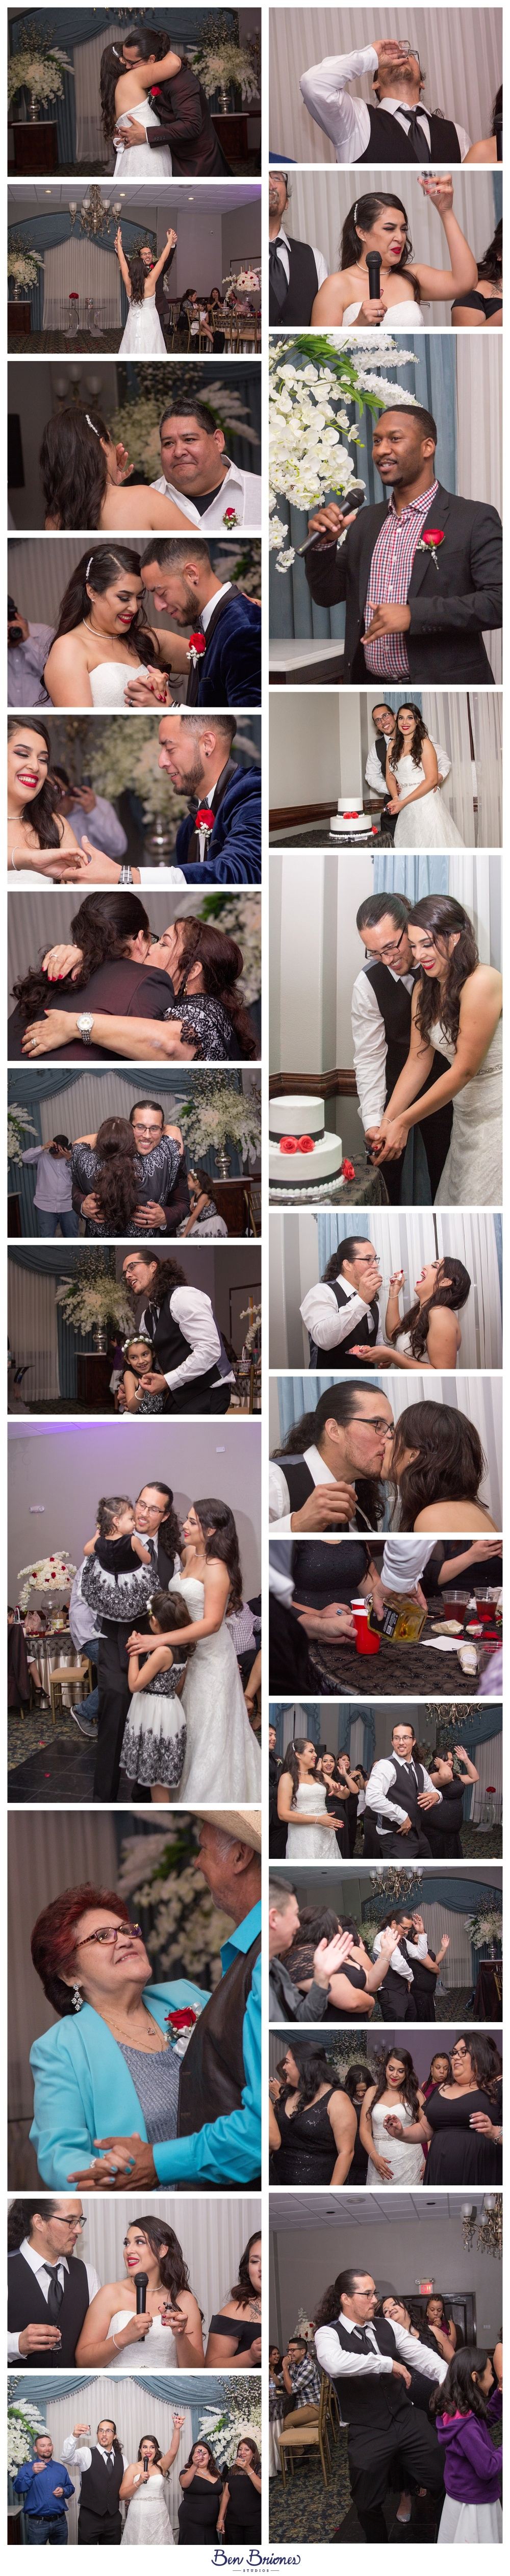 03.10.18_PRINT_TheWeddingGal_MariosBallroom_BBS-0367_WEB